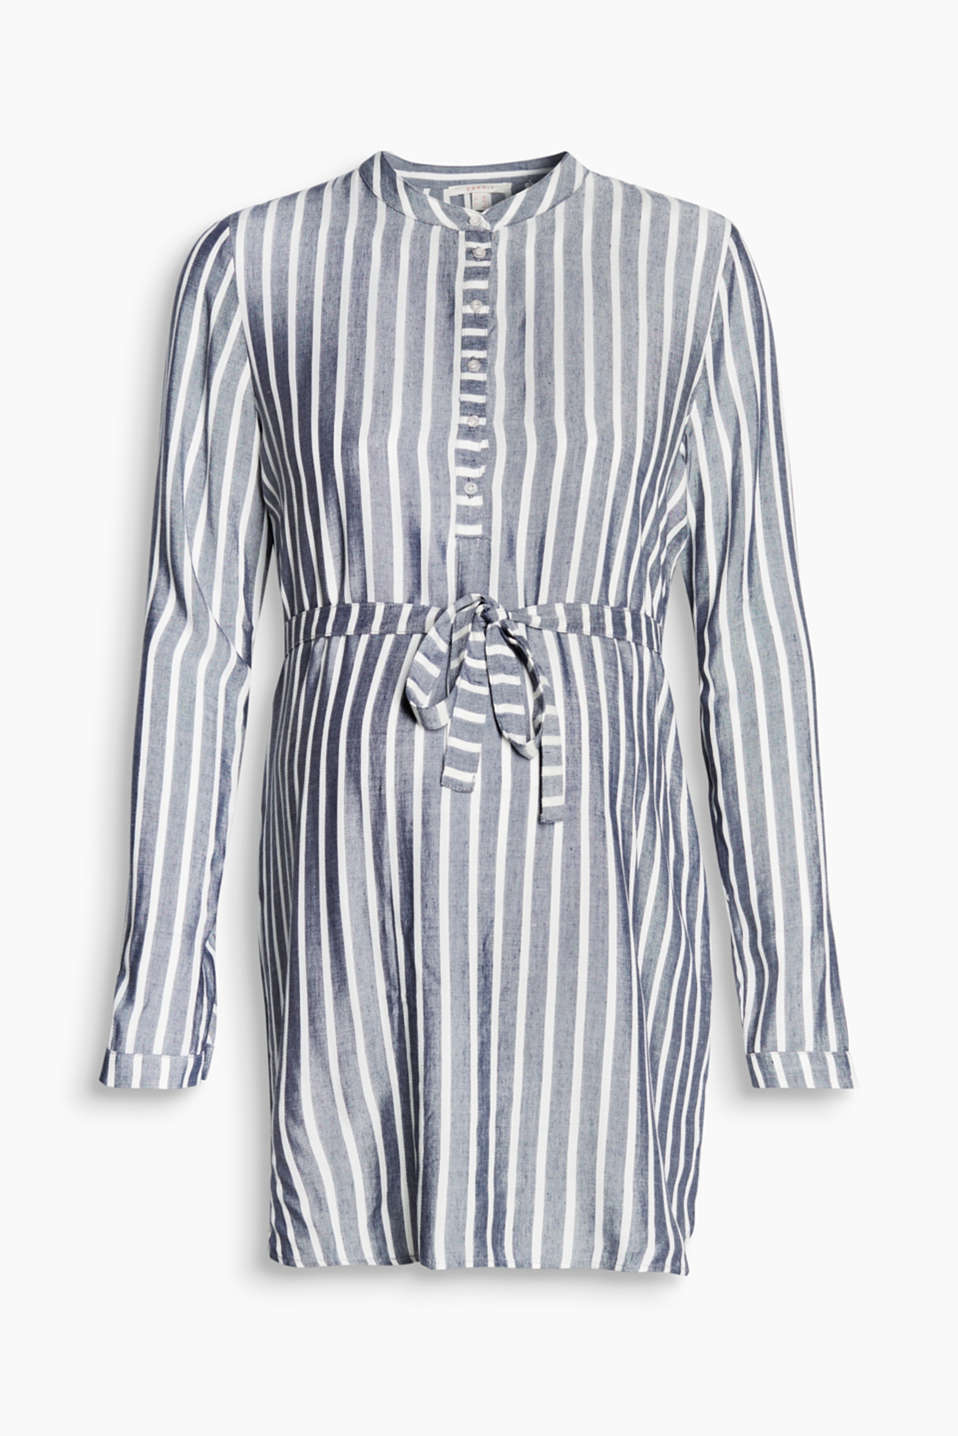 Flowing long blouse with a long button placket, tie-around belt and stylish striped pattern